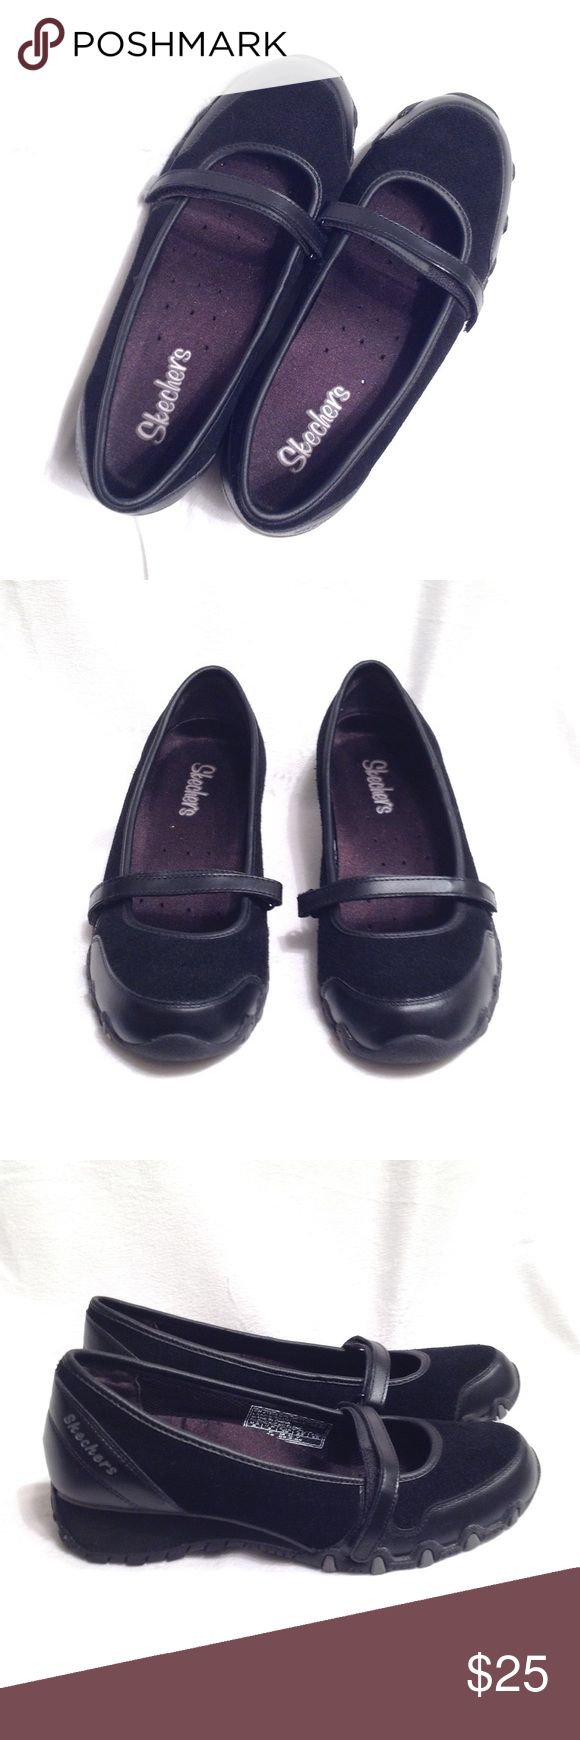 Skechers black shoes New without box. Price is firm Skechers Shoes